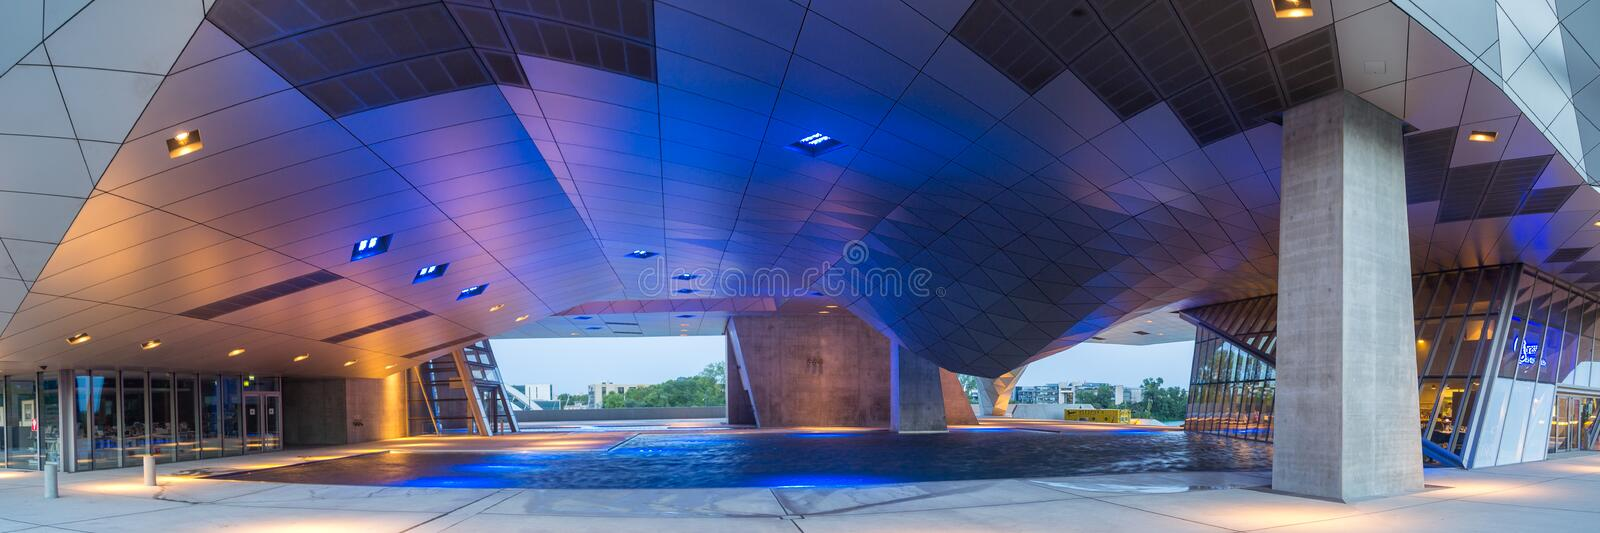 Lyon Musee des Confluences. Lyon, France - 25. August 2017. View of the new Musee des Confluences, a modern Museum Building stock photography